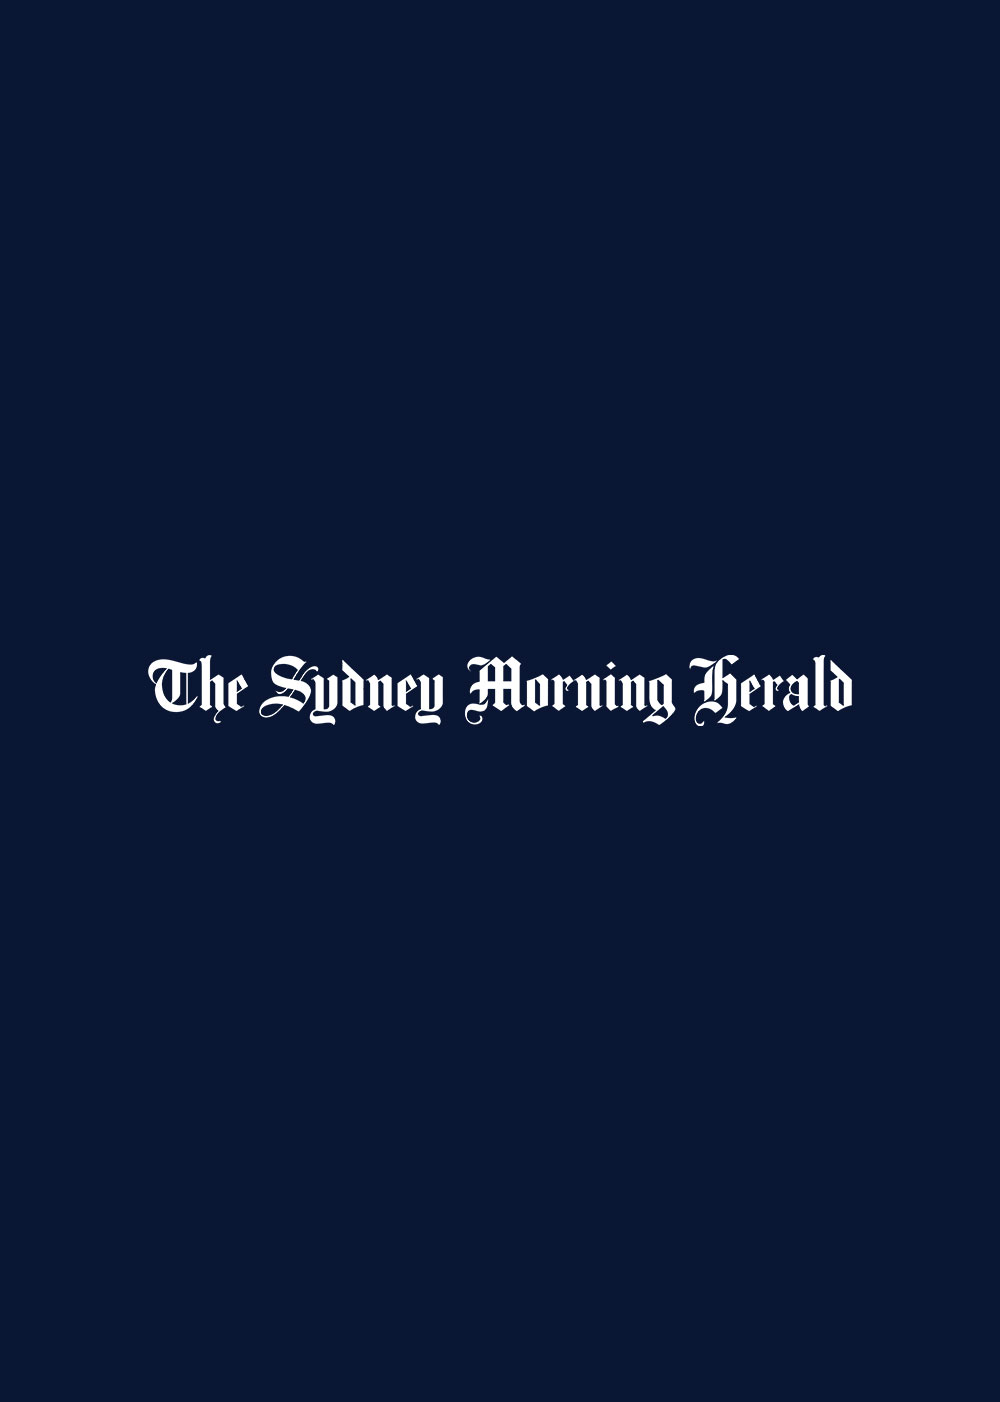 Logo of the Sydney Morning Herald